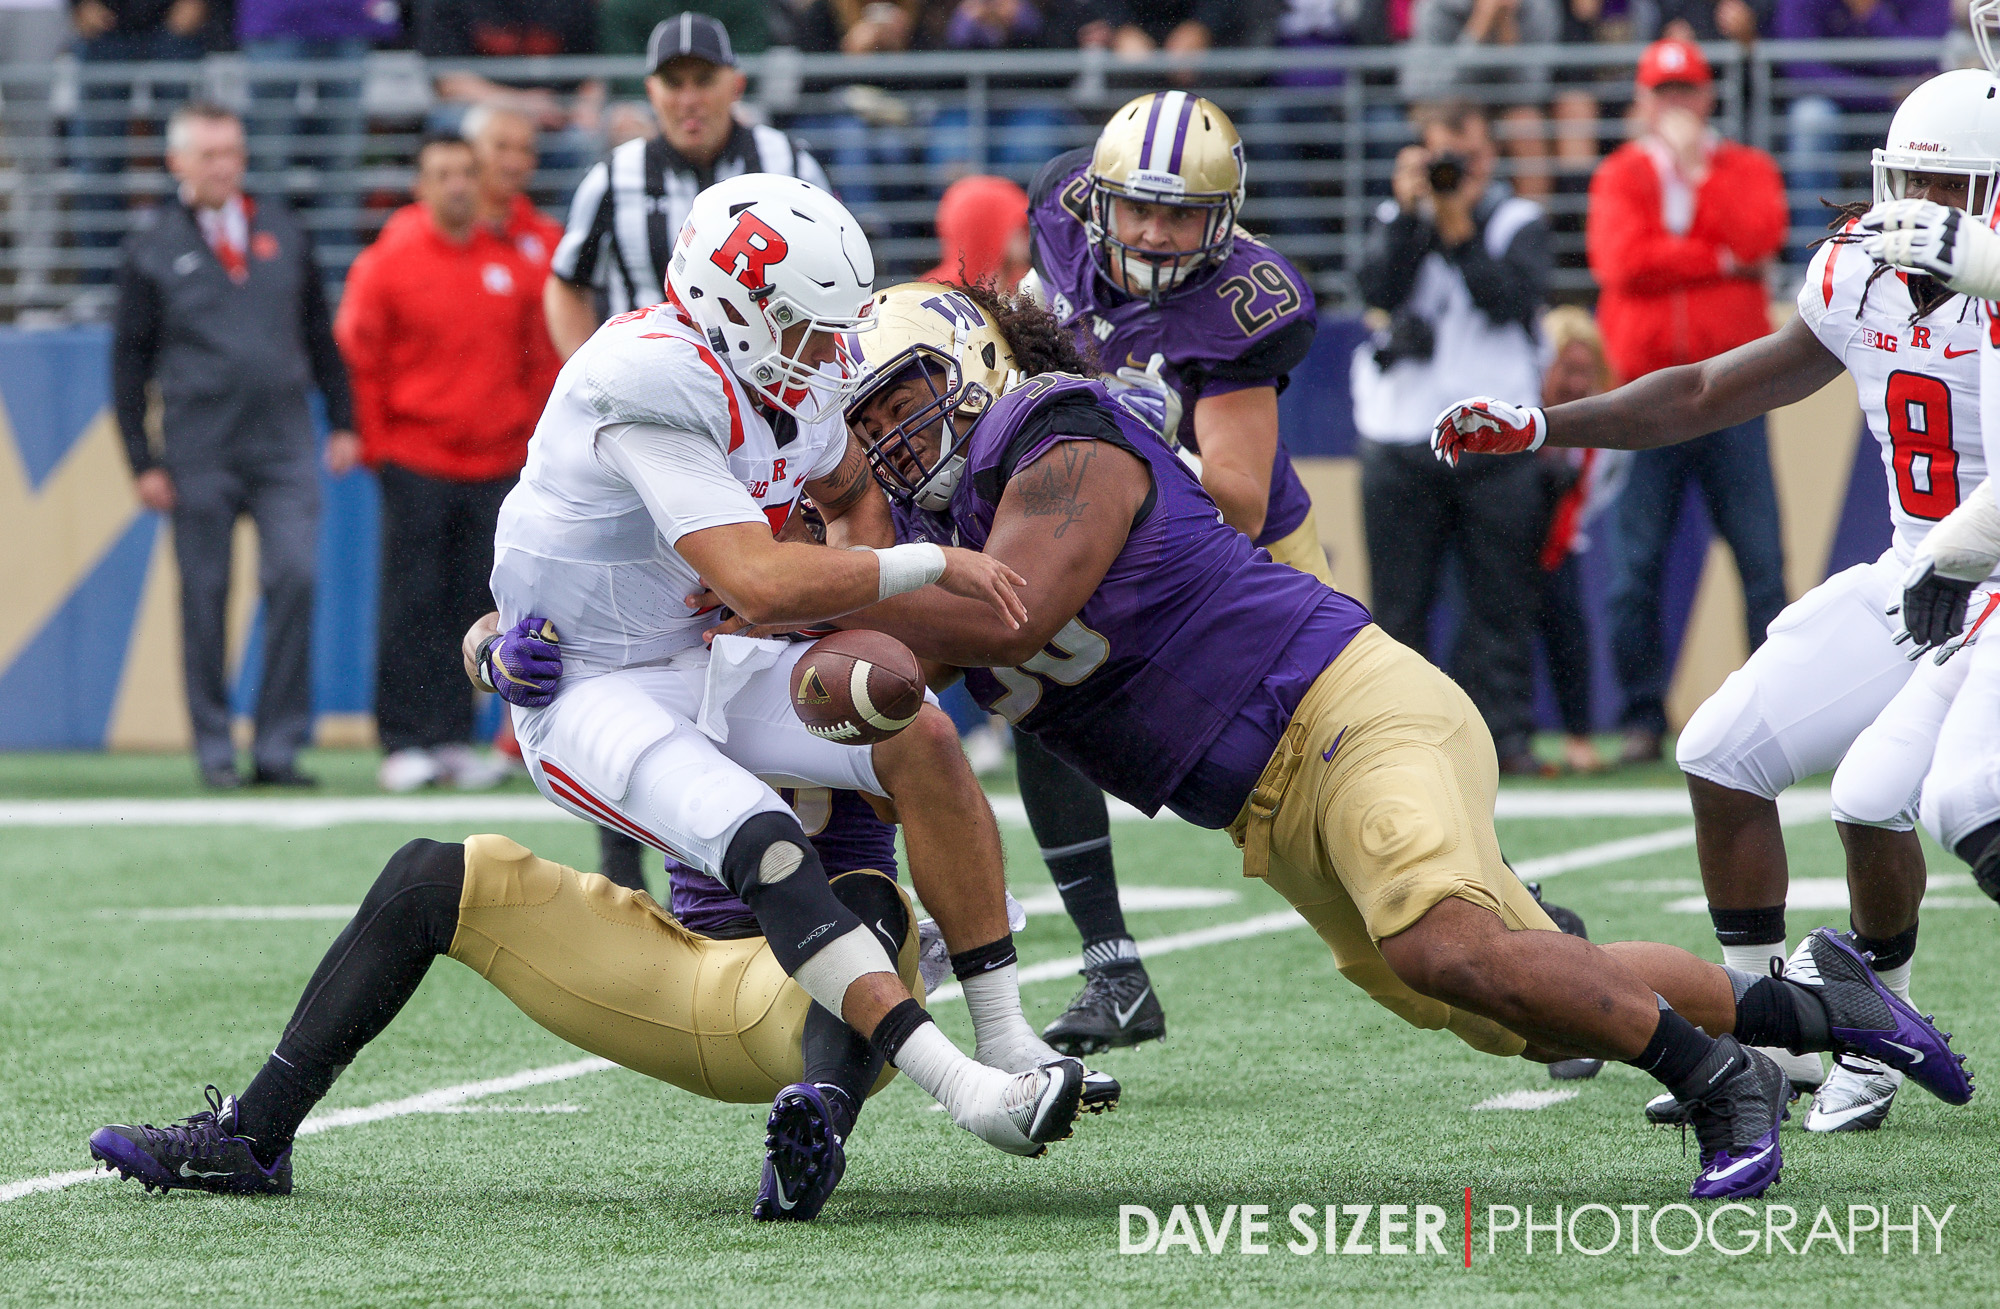 UW's Vita Vea hits Chris Laviano and forces a fumble.